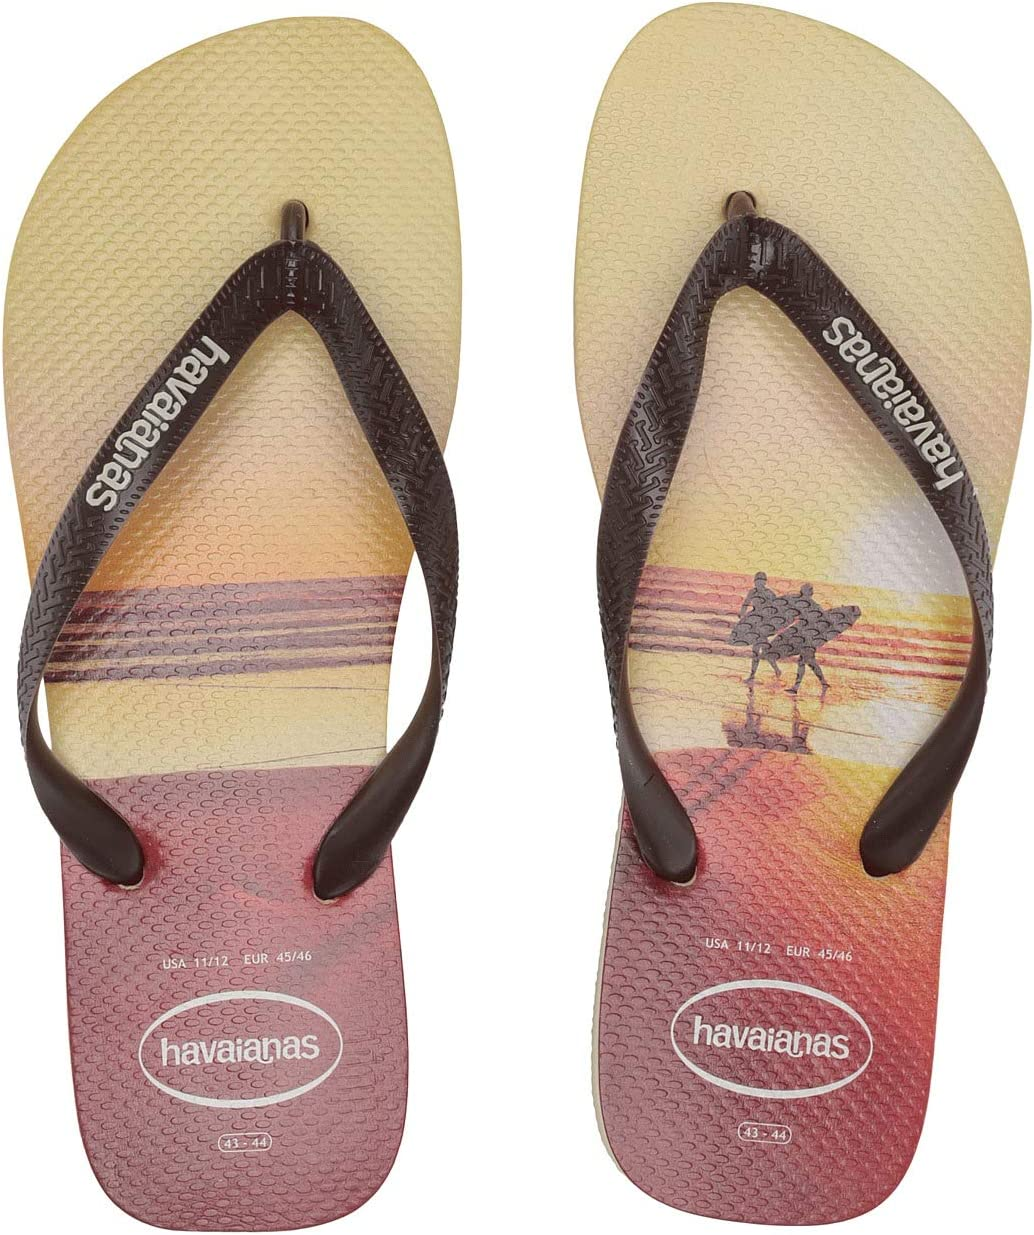 30fcfe5edd9a Havaianas Shoes   Accessories